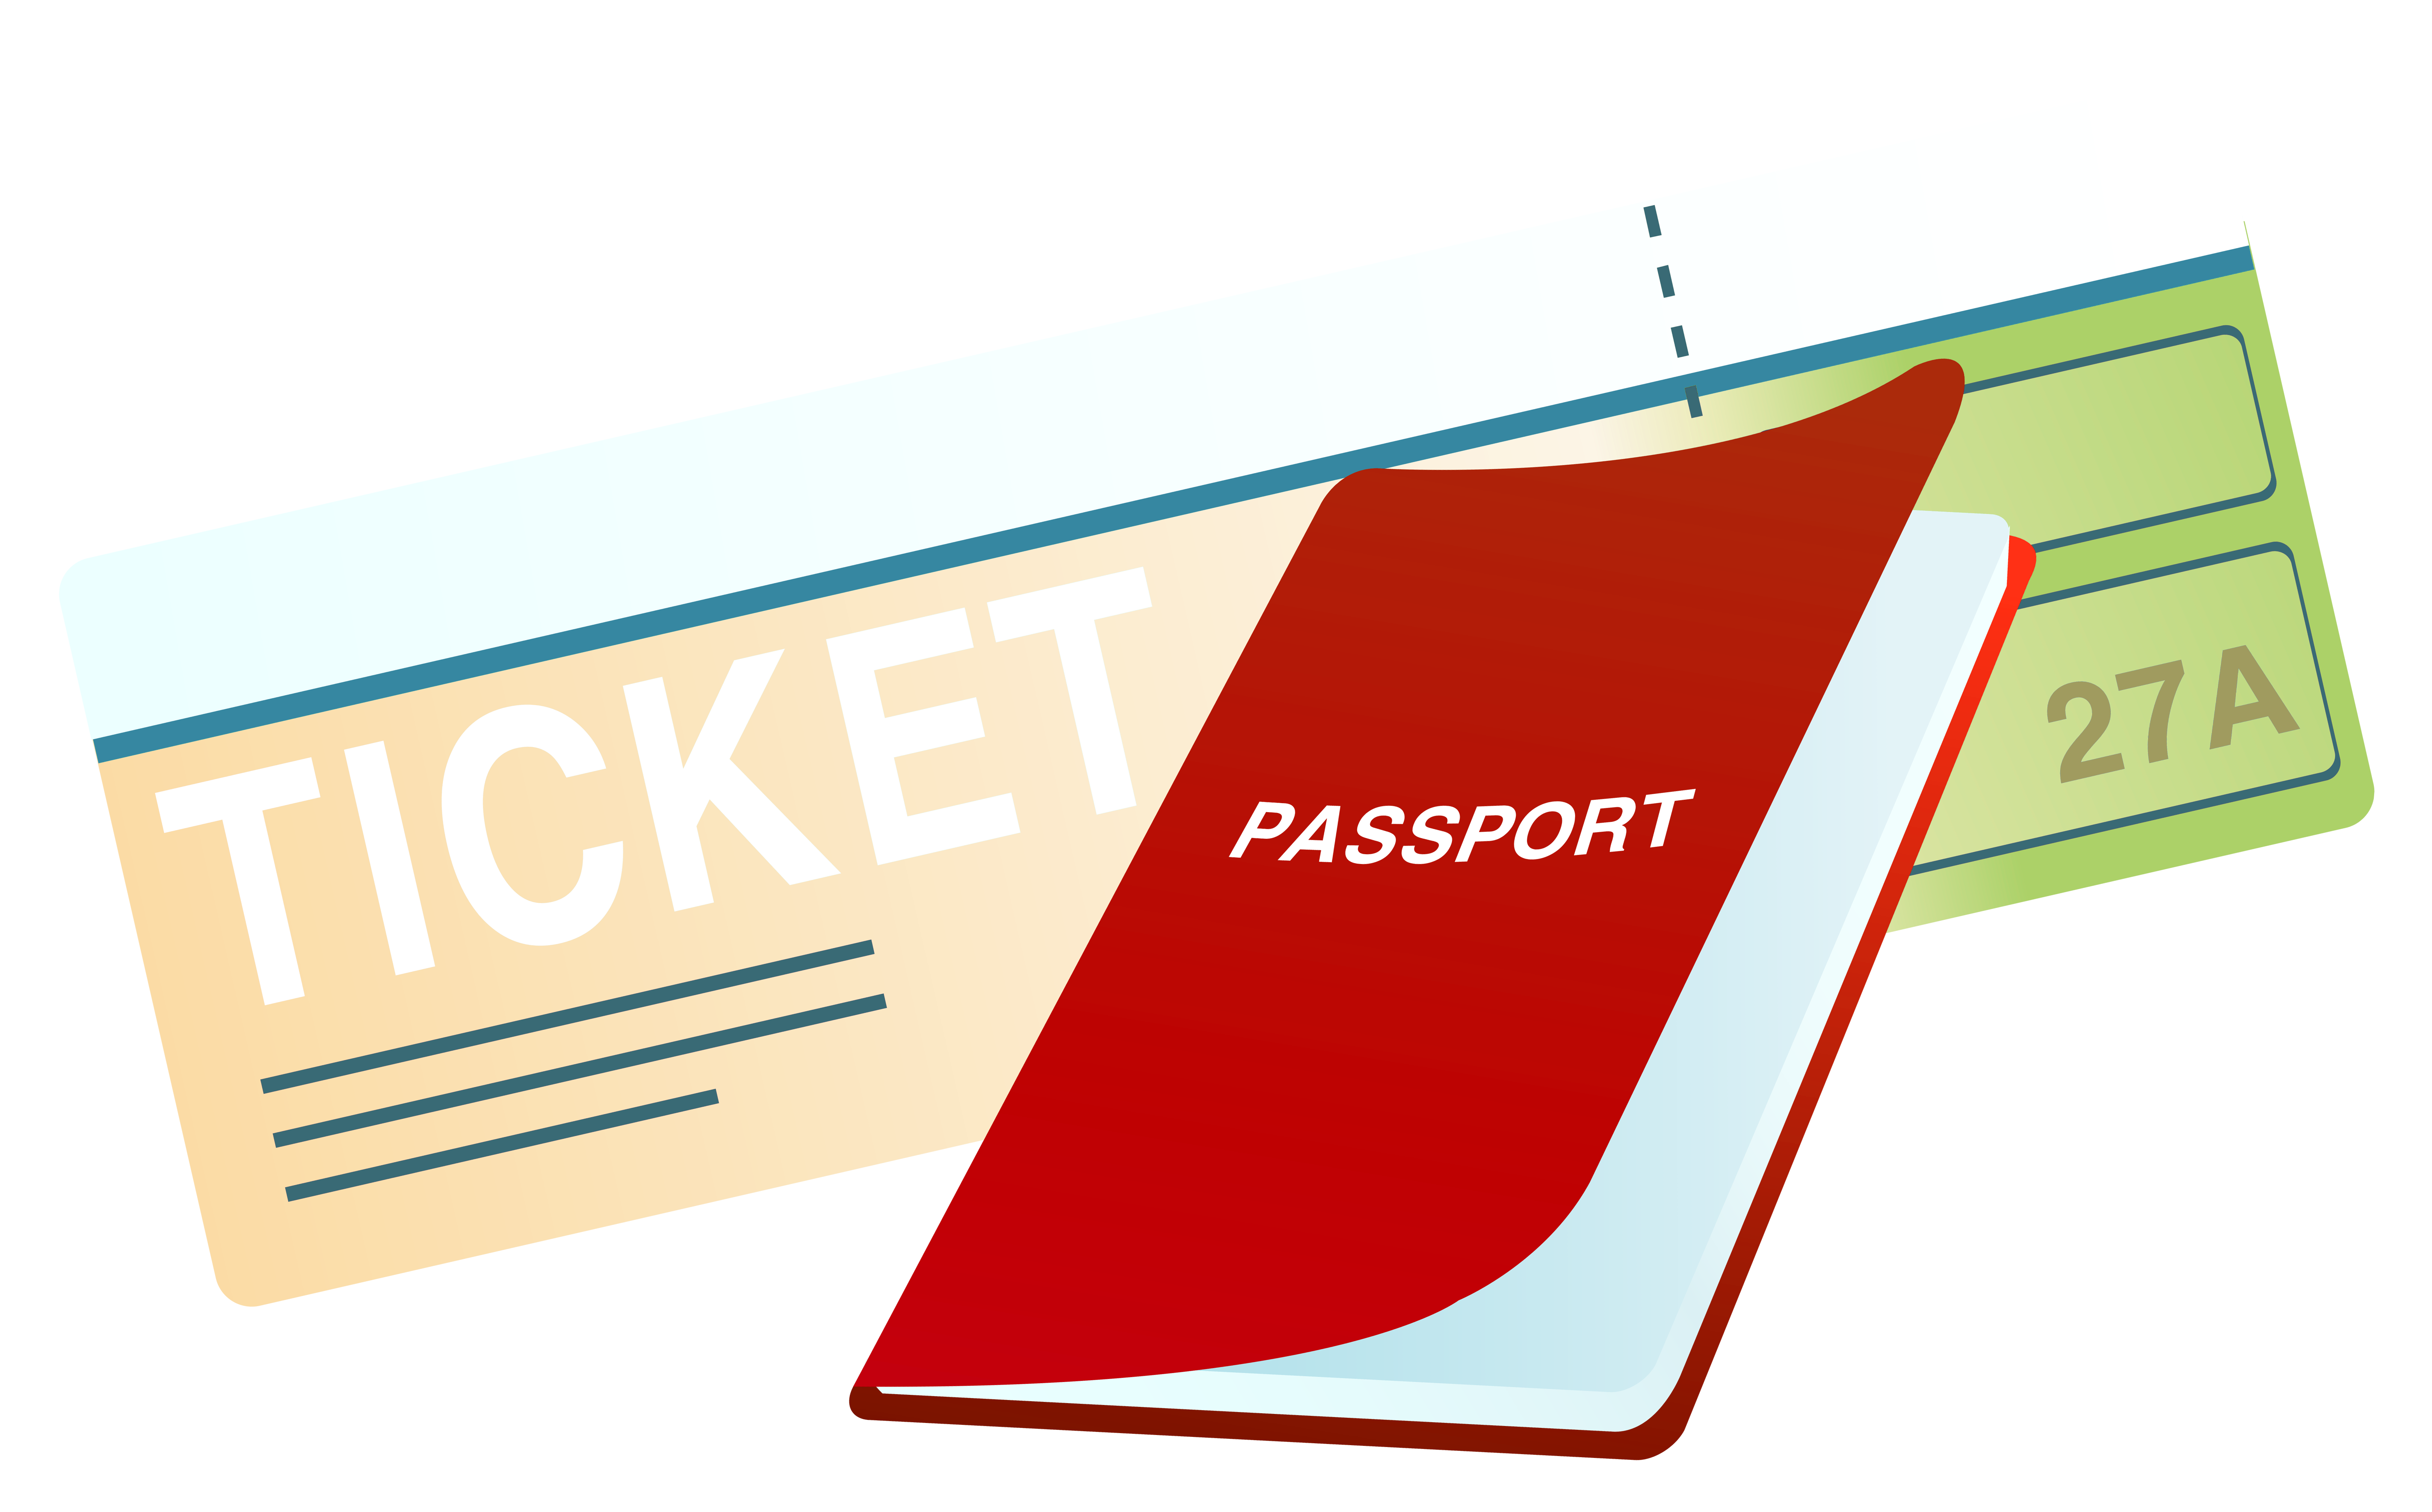 Tickets clipart transparent background. Ticket and passport png